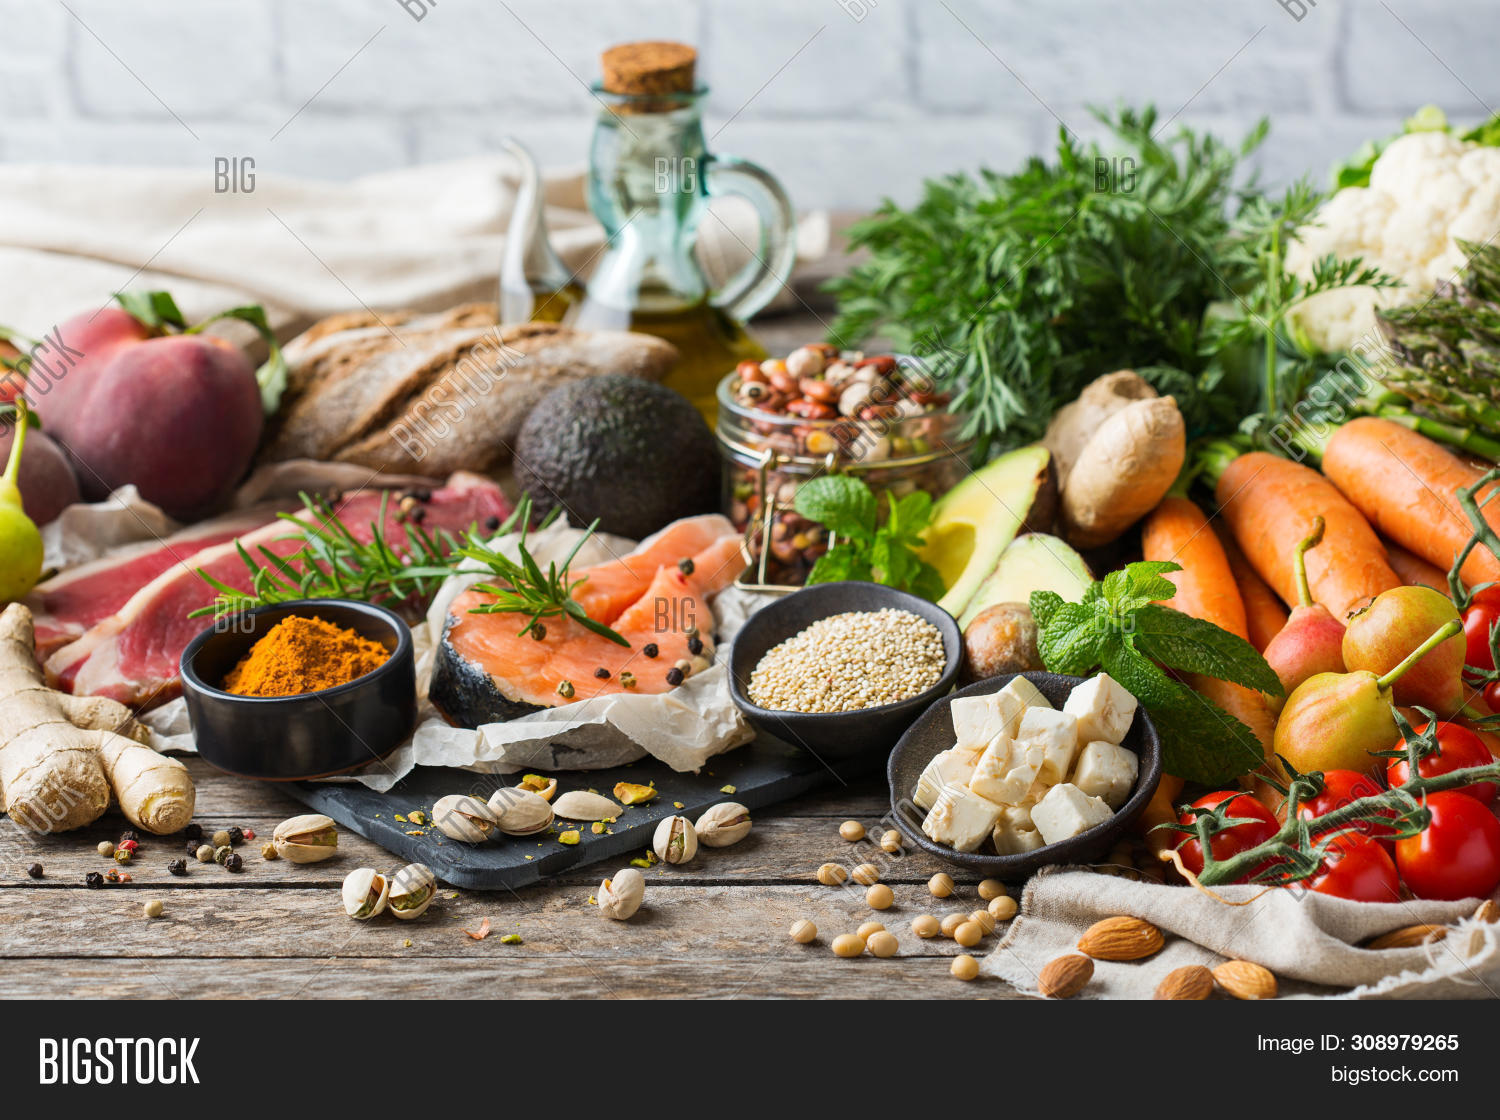 Balanced Nutrition Concept For Clean Eating Flexitarian Mediterranean Diet. Assortment Of Healthy Fo